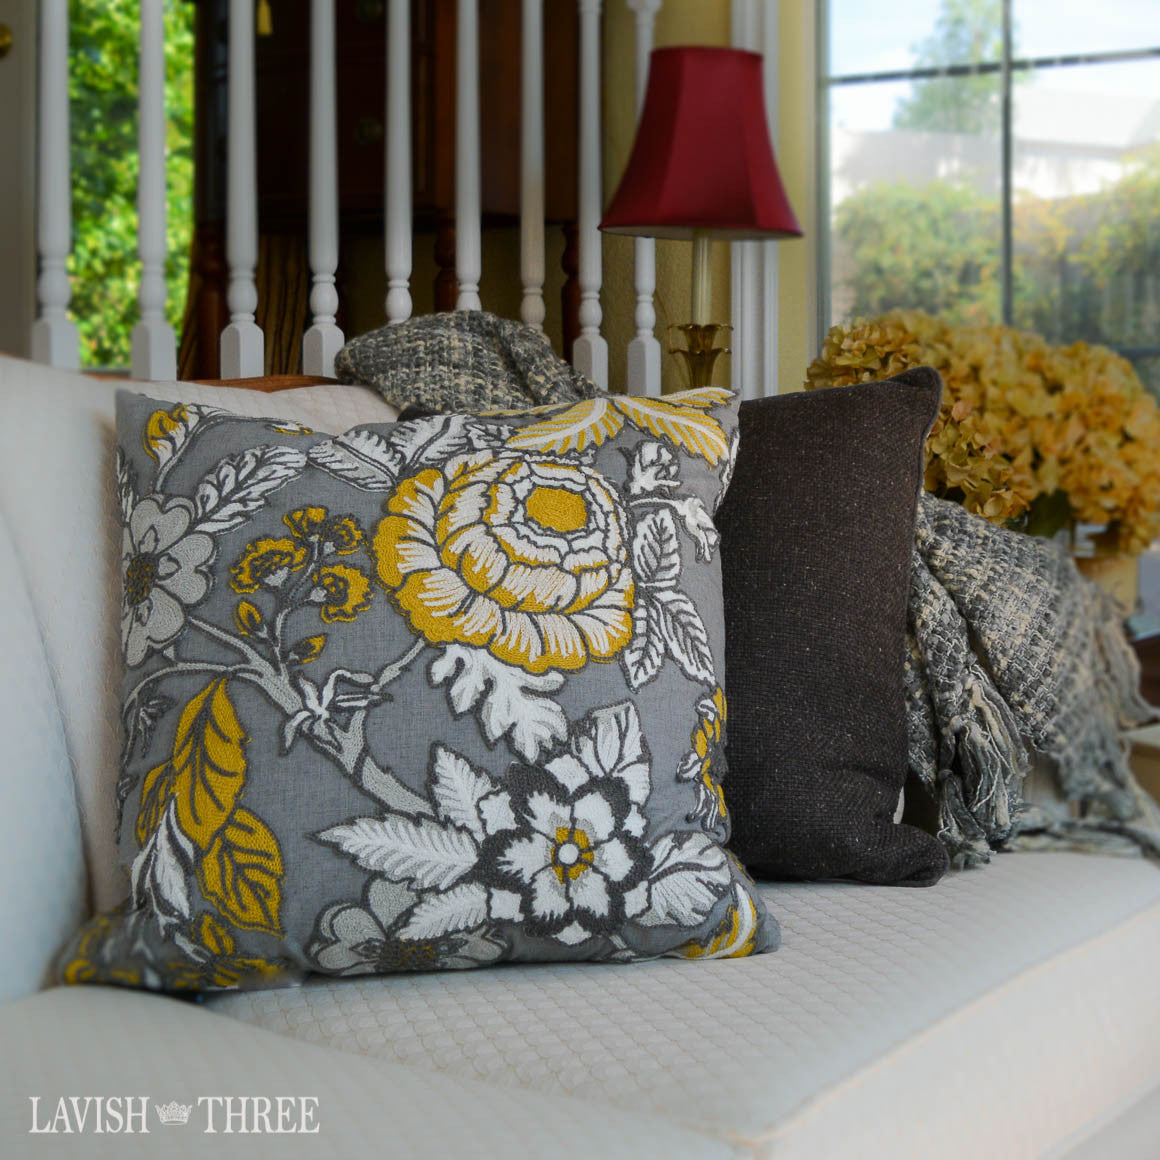 Floral large decorative accent throw pillow grey, yellow, white